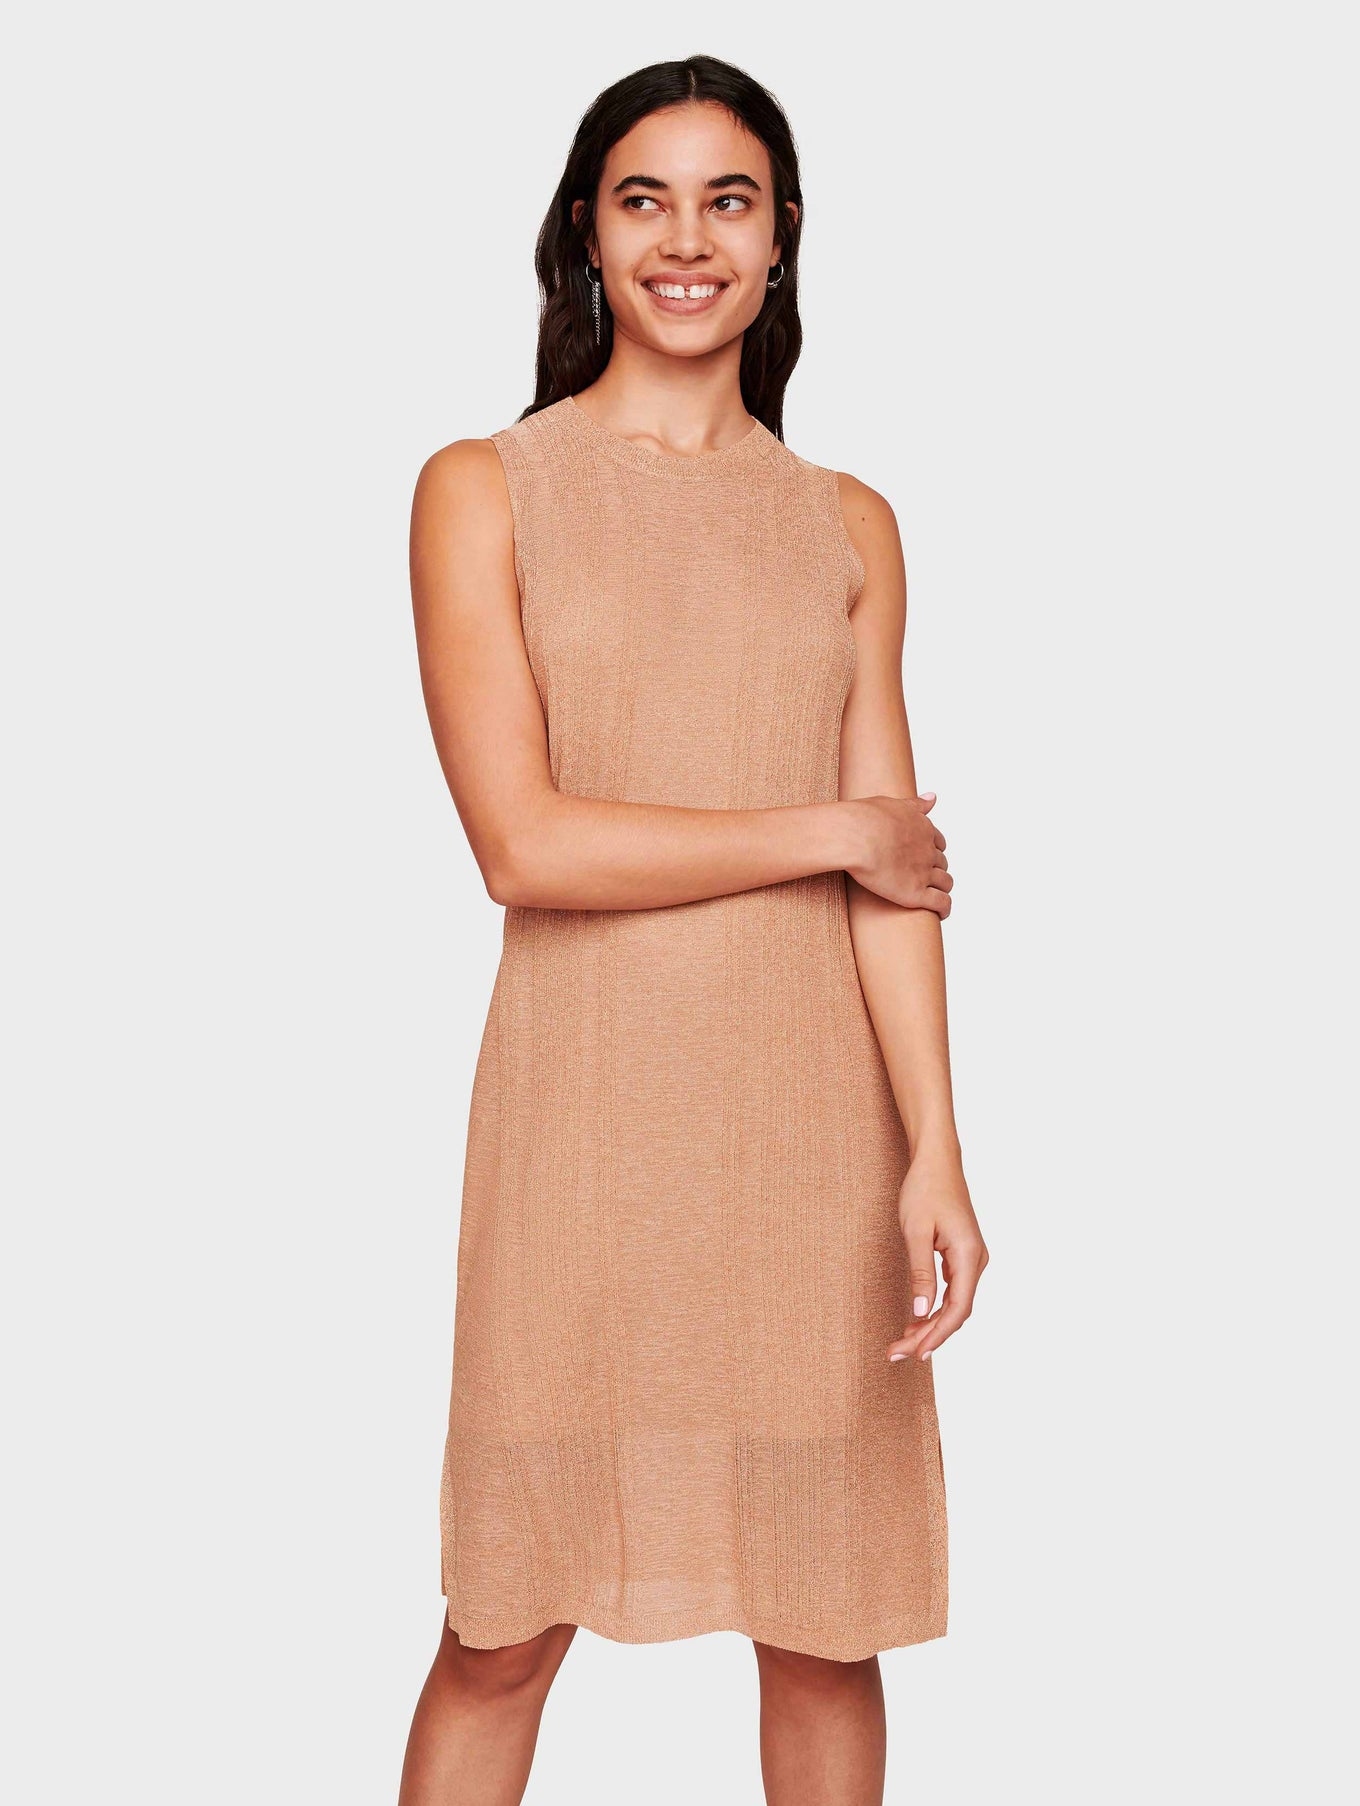 Italian Summer Shine Tank Dress - Golden Peach - Image 1